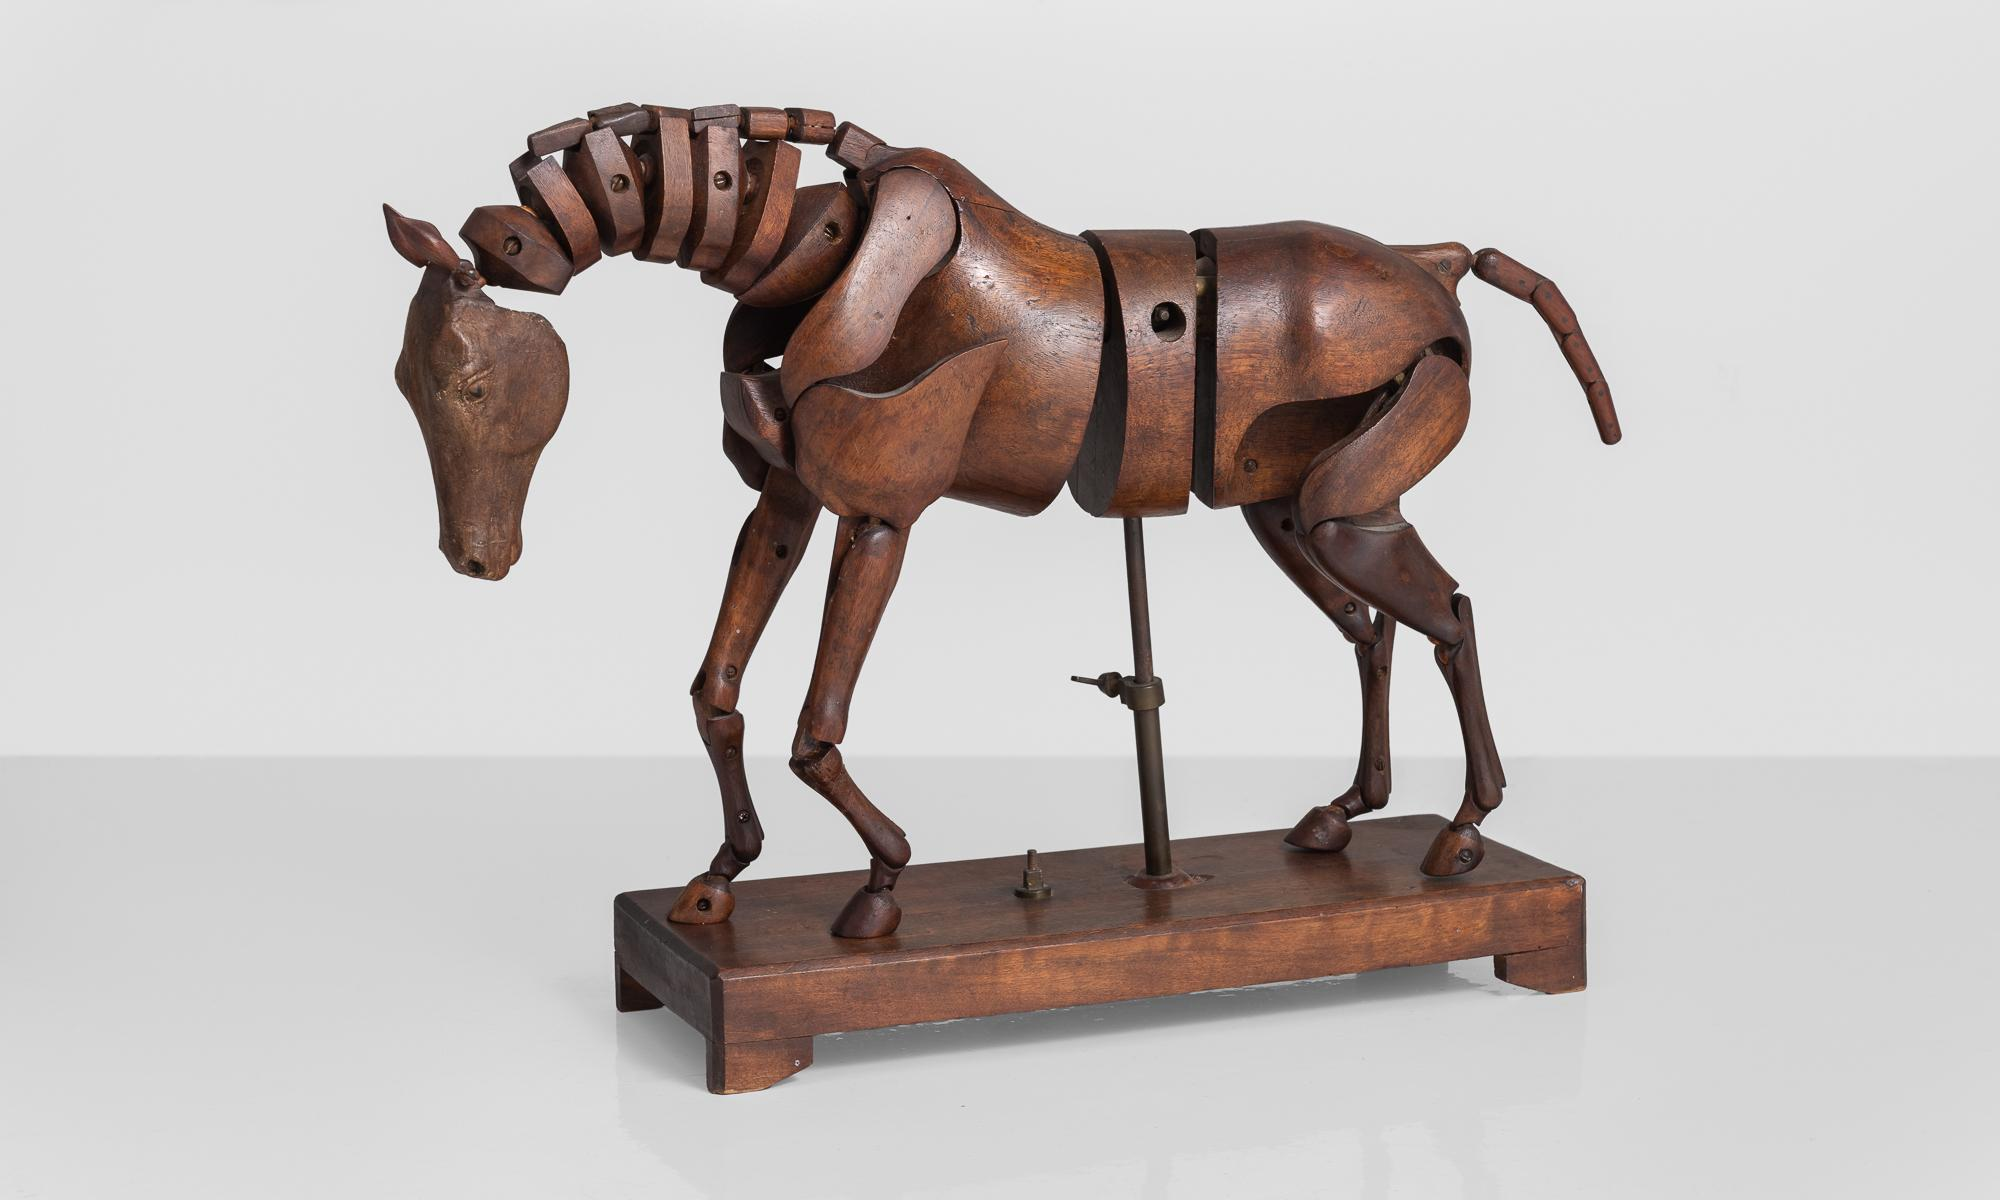 Articulated Wooden Horse Artist's Model by C. Barbe. England. circa 1830 For Sale at 1stDibs